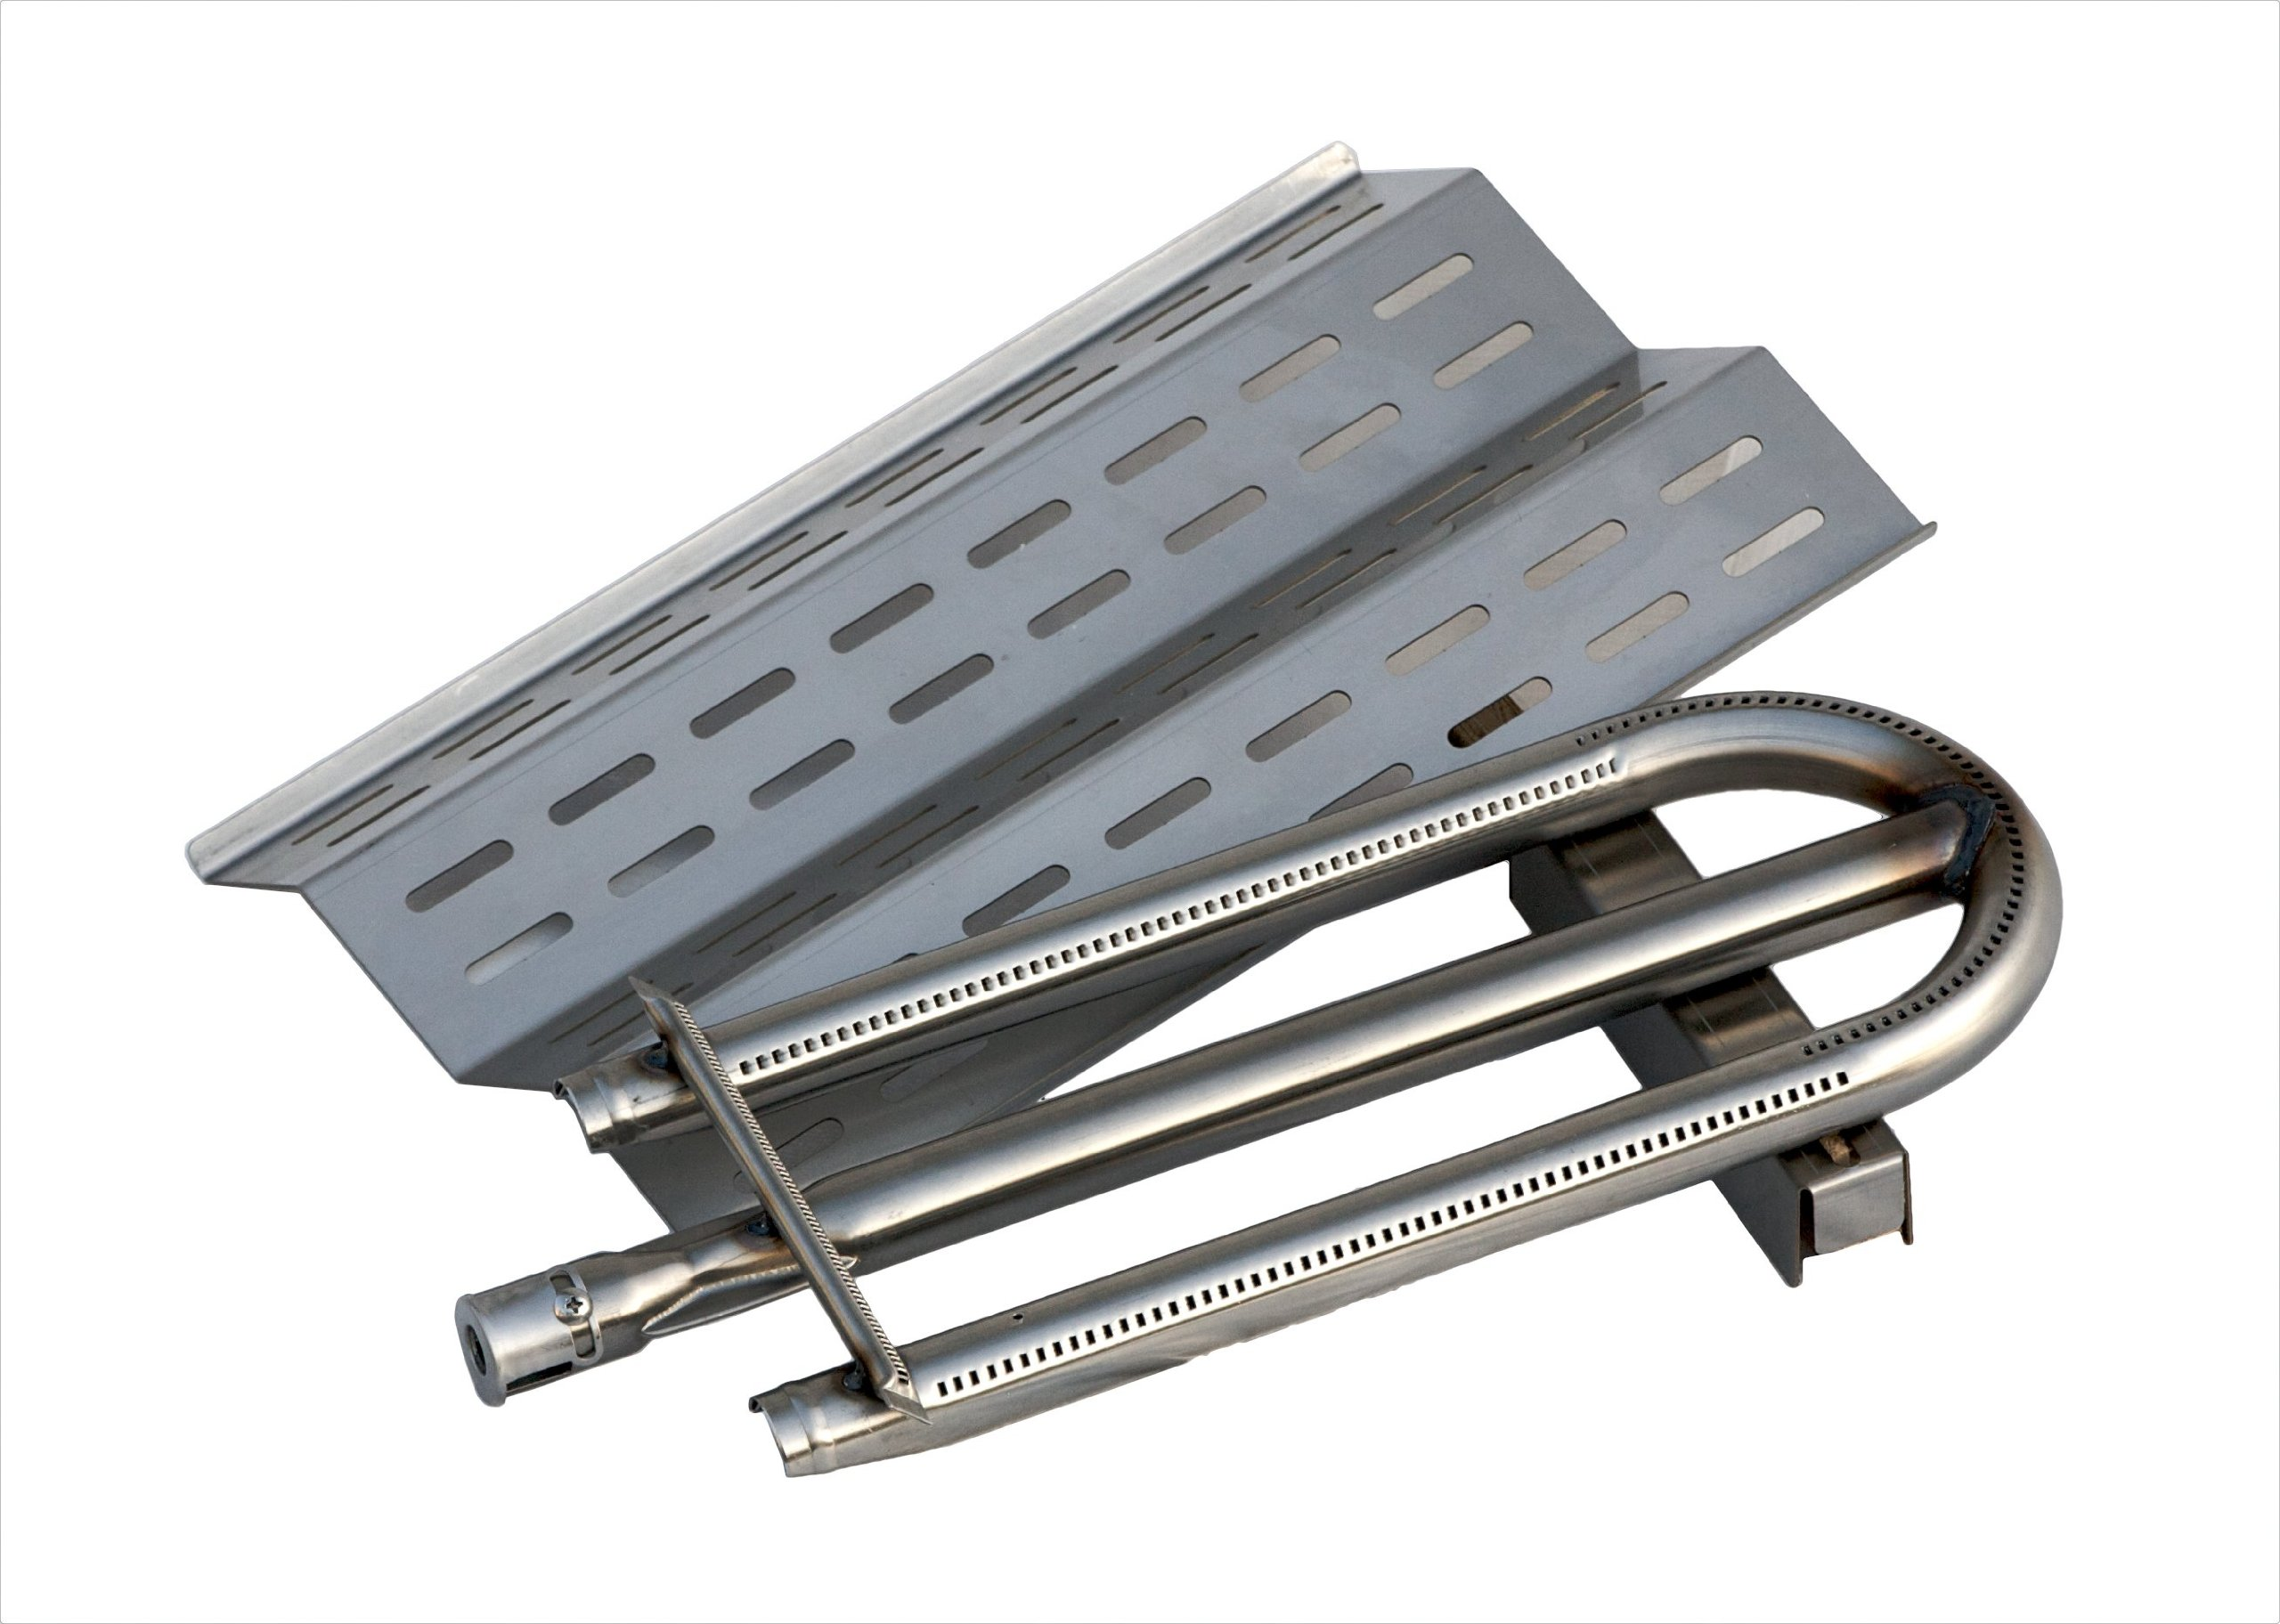 Solaire Convection Burner Conversion Kit for Solaire 27XL Grills by Solaire